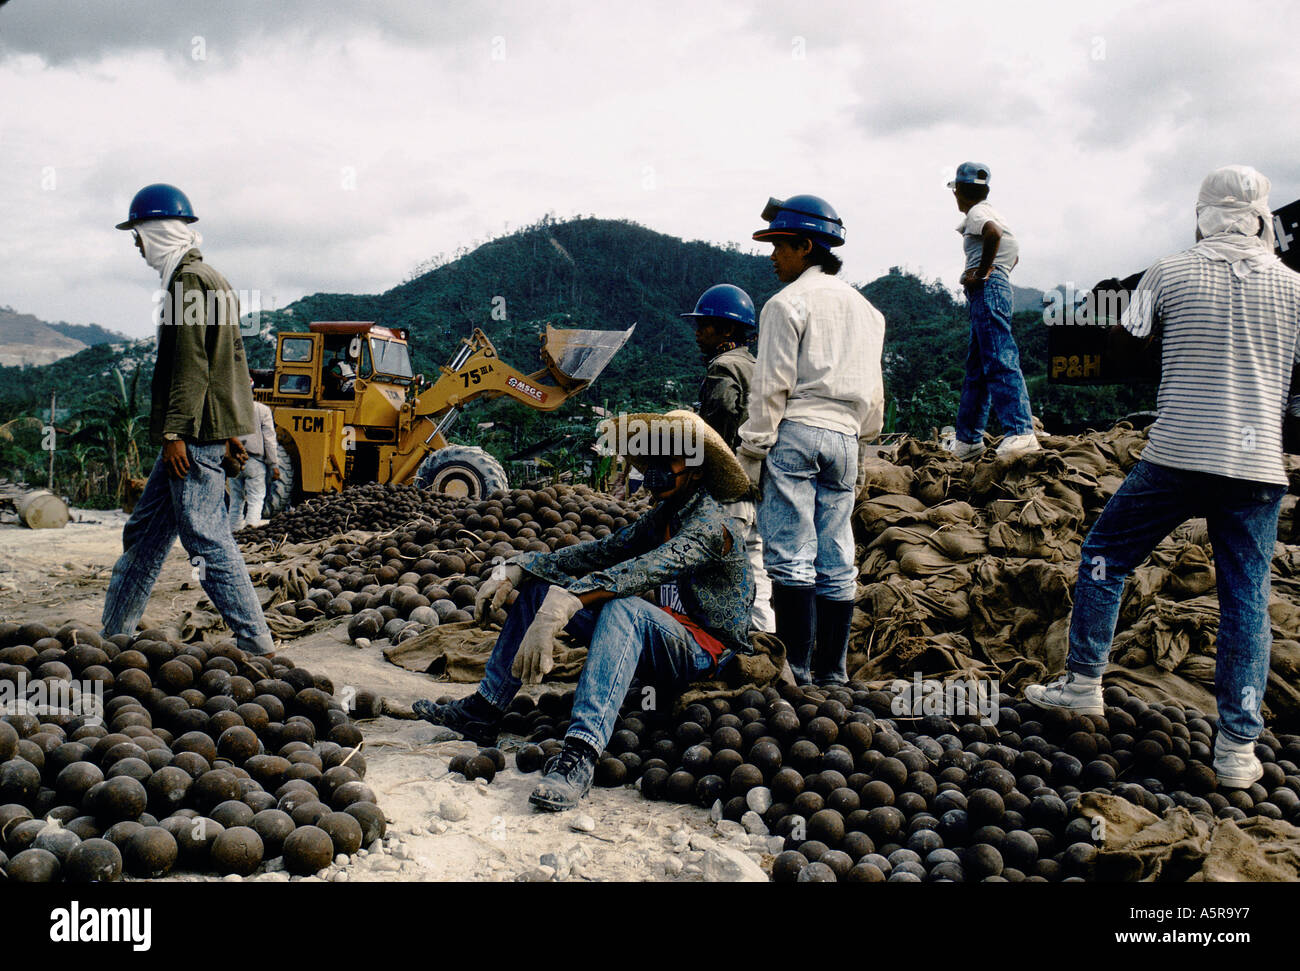 MOUNT PINATUBO DISASTER FEBRUARY 1991 WORKERS AT THE BENQUET CO COPPERMINE ZAMBALES PROVINCE ARE LOADING STEEL BALLS FOR THE CR - Stock Image